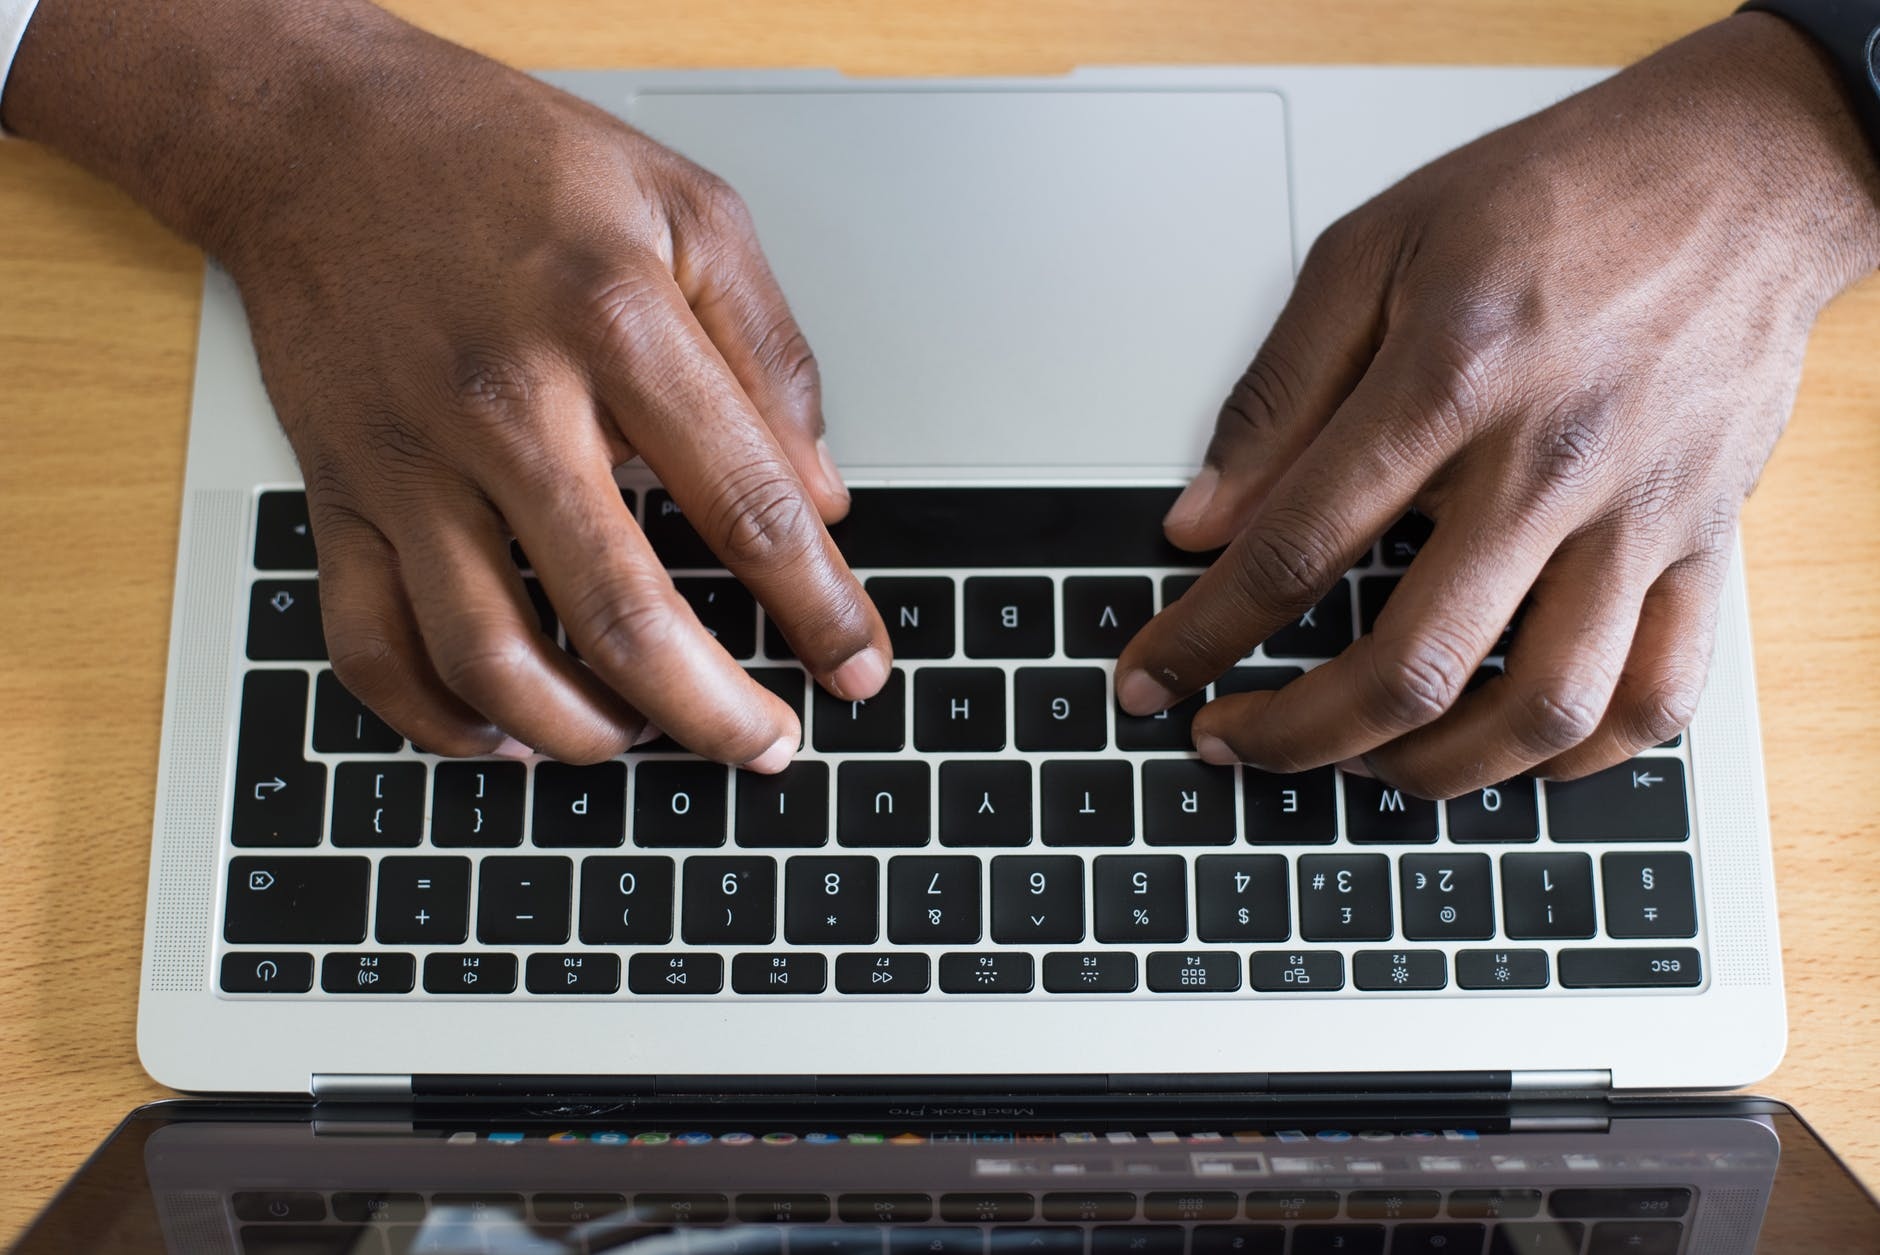 hands of a person typing laptop